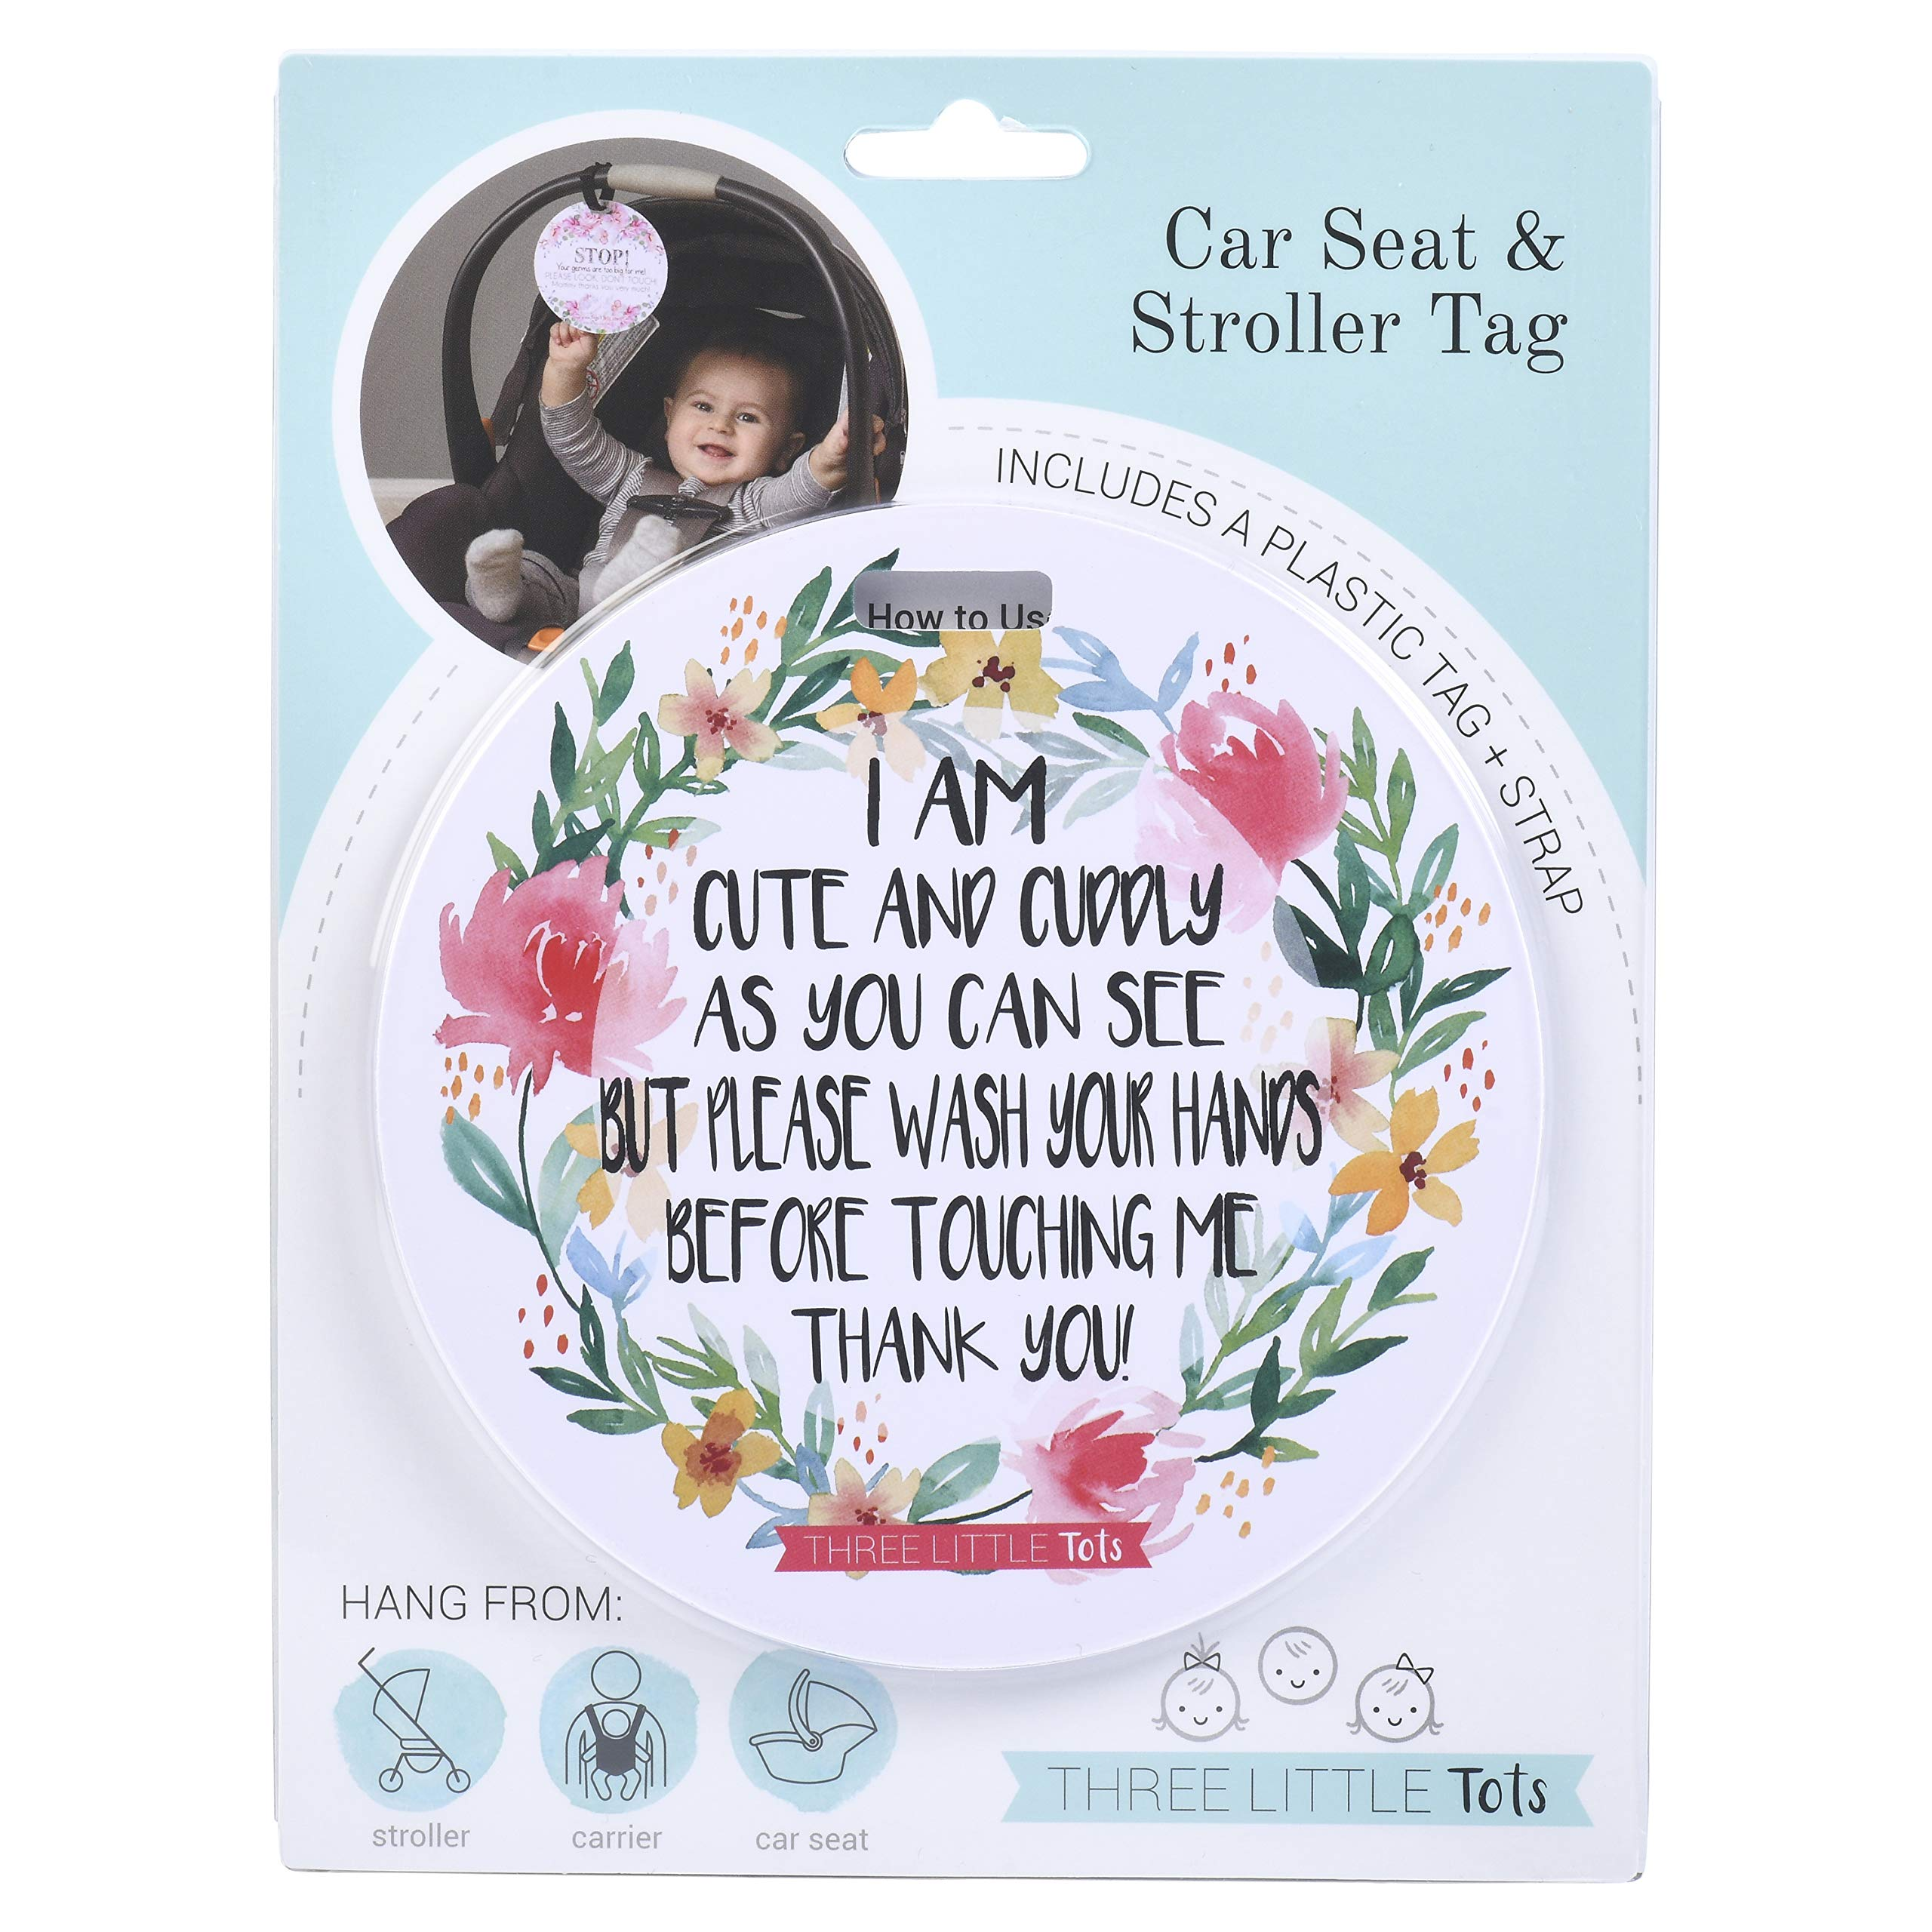 Cute Flower Tag - I'm Cute and Cuddly As Can Be but Please Wash Your Hands Before Touching Me (Baby Safety No Touching Newborn, Baby Car Seat Tag, Baby Preemie No Touching Car Seat Sign)